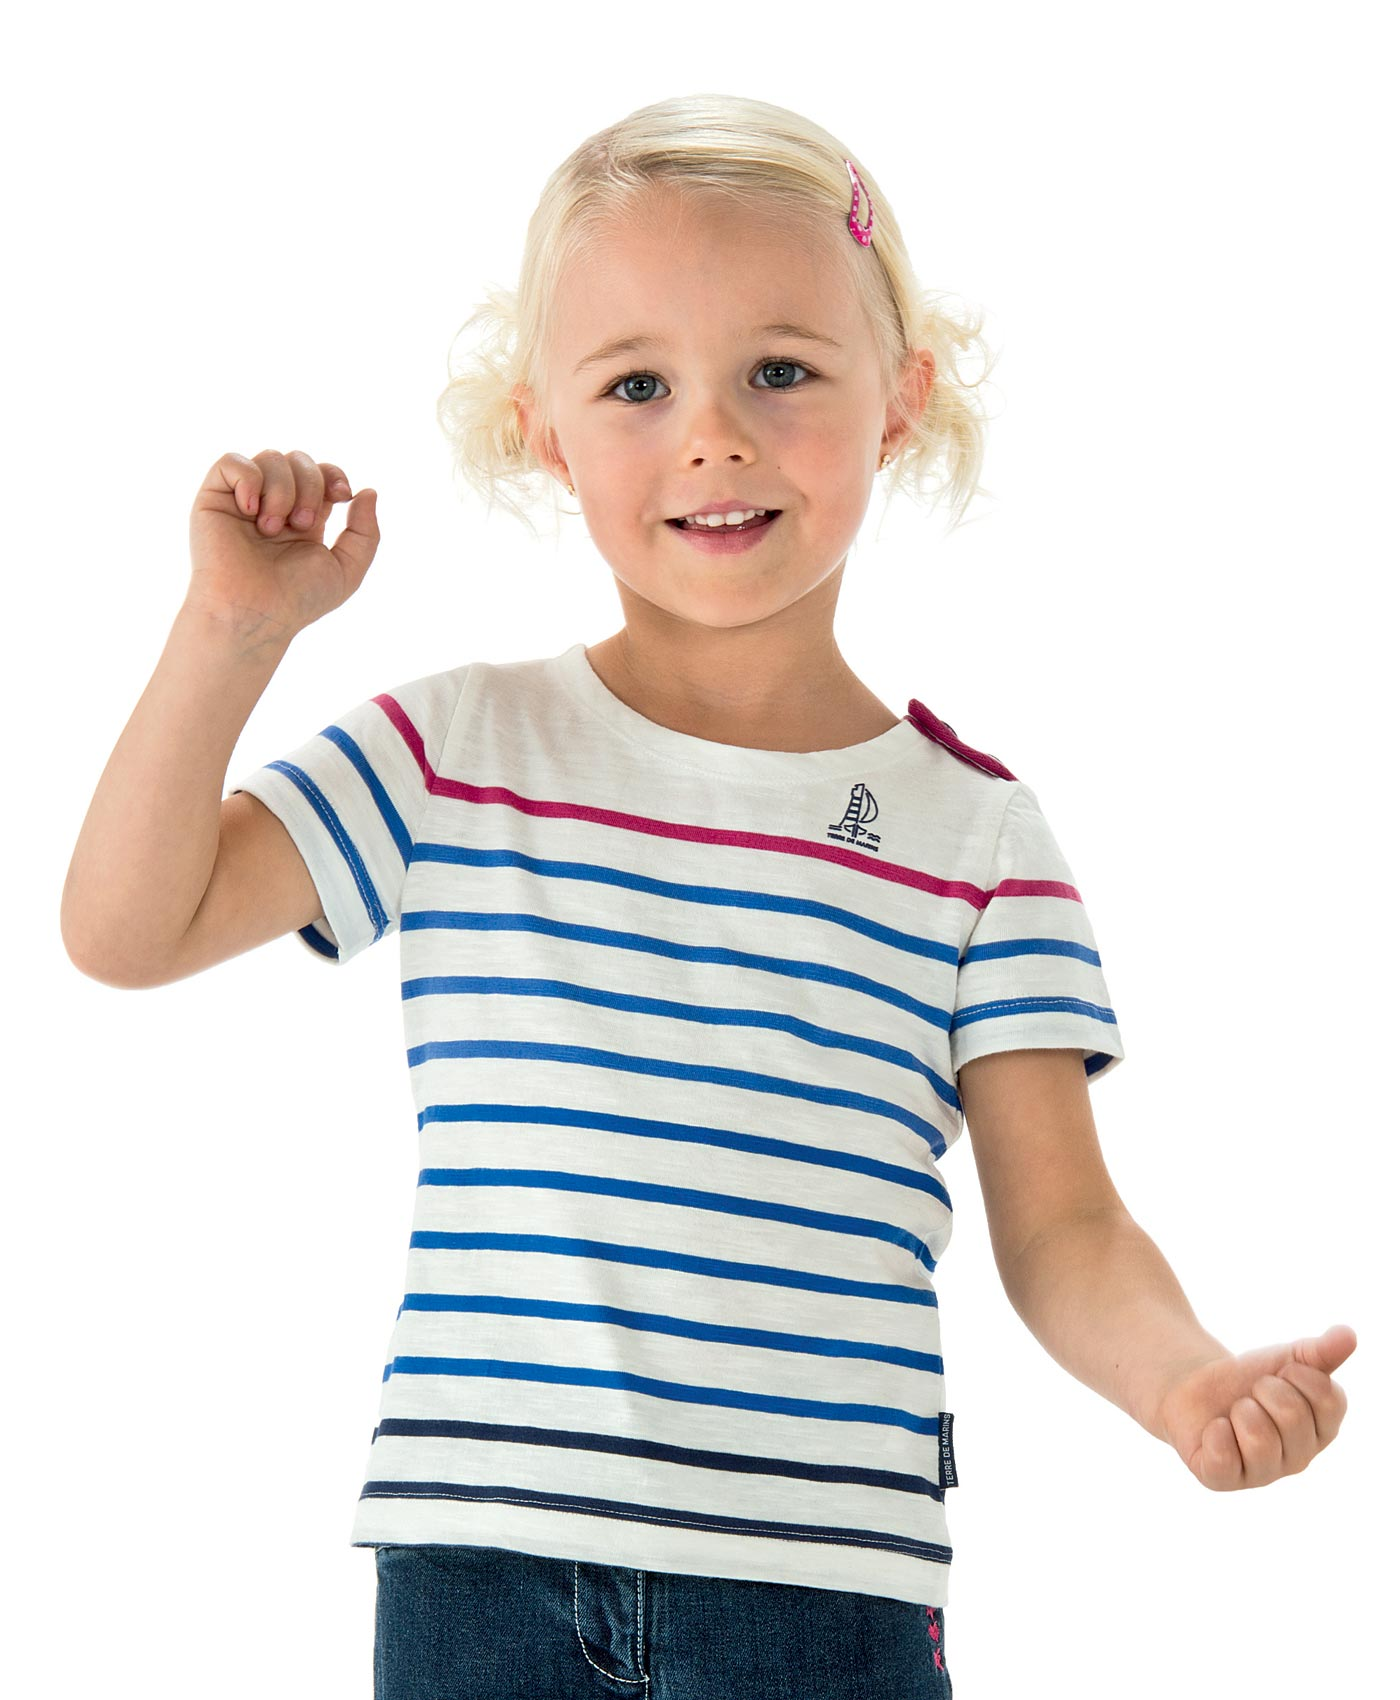 57f8e47b68431 Tee-shirt marinière fille multicolore - T-Shirt, Polo Mode Enfant fille  Terre